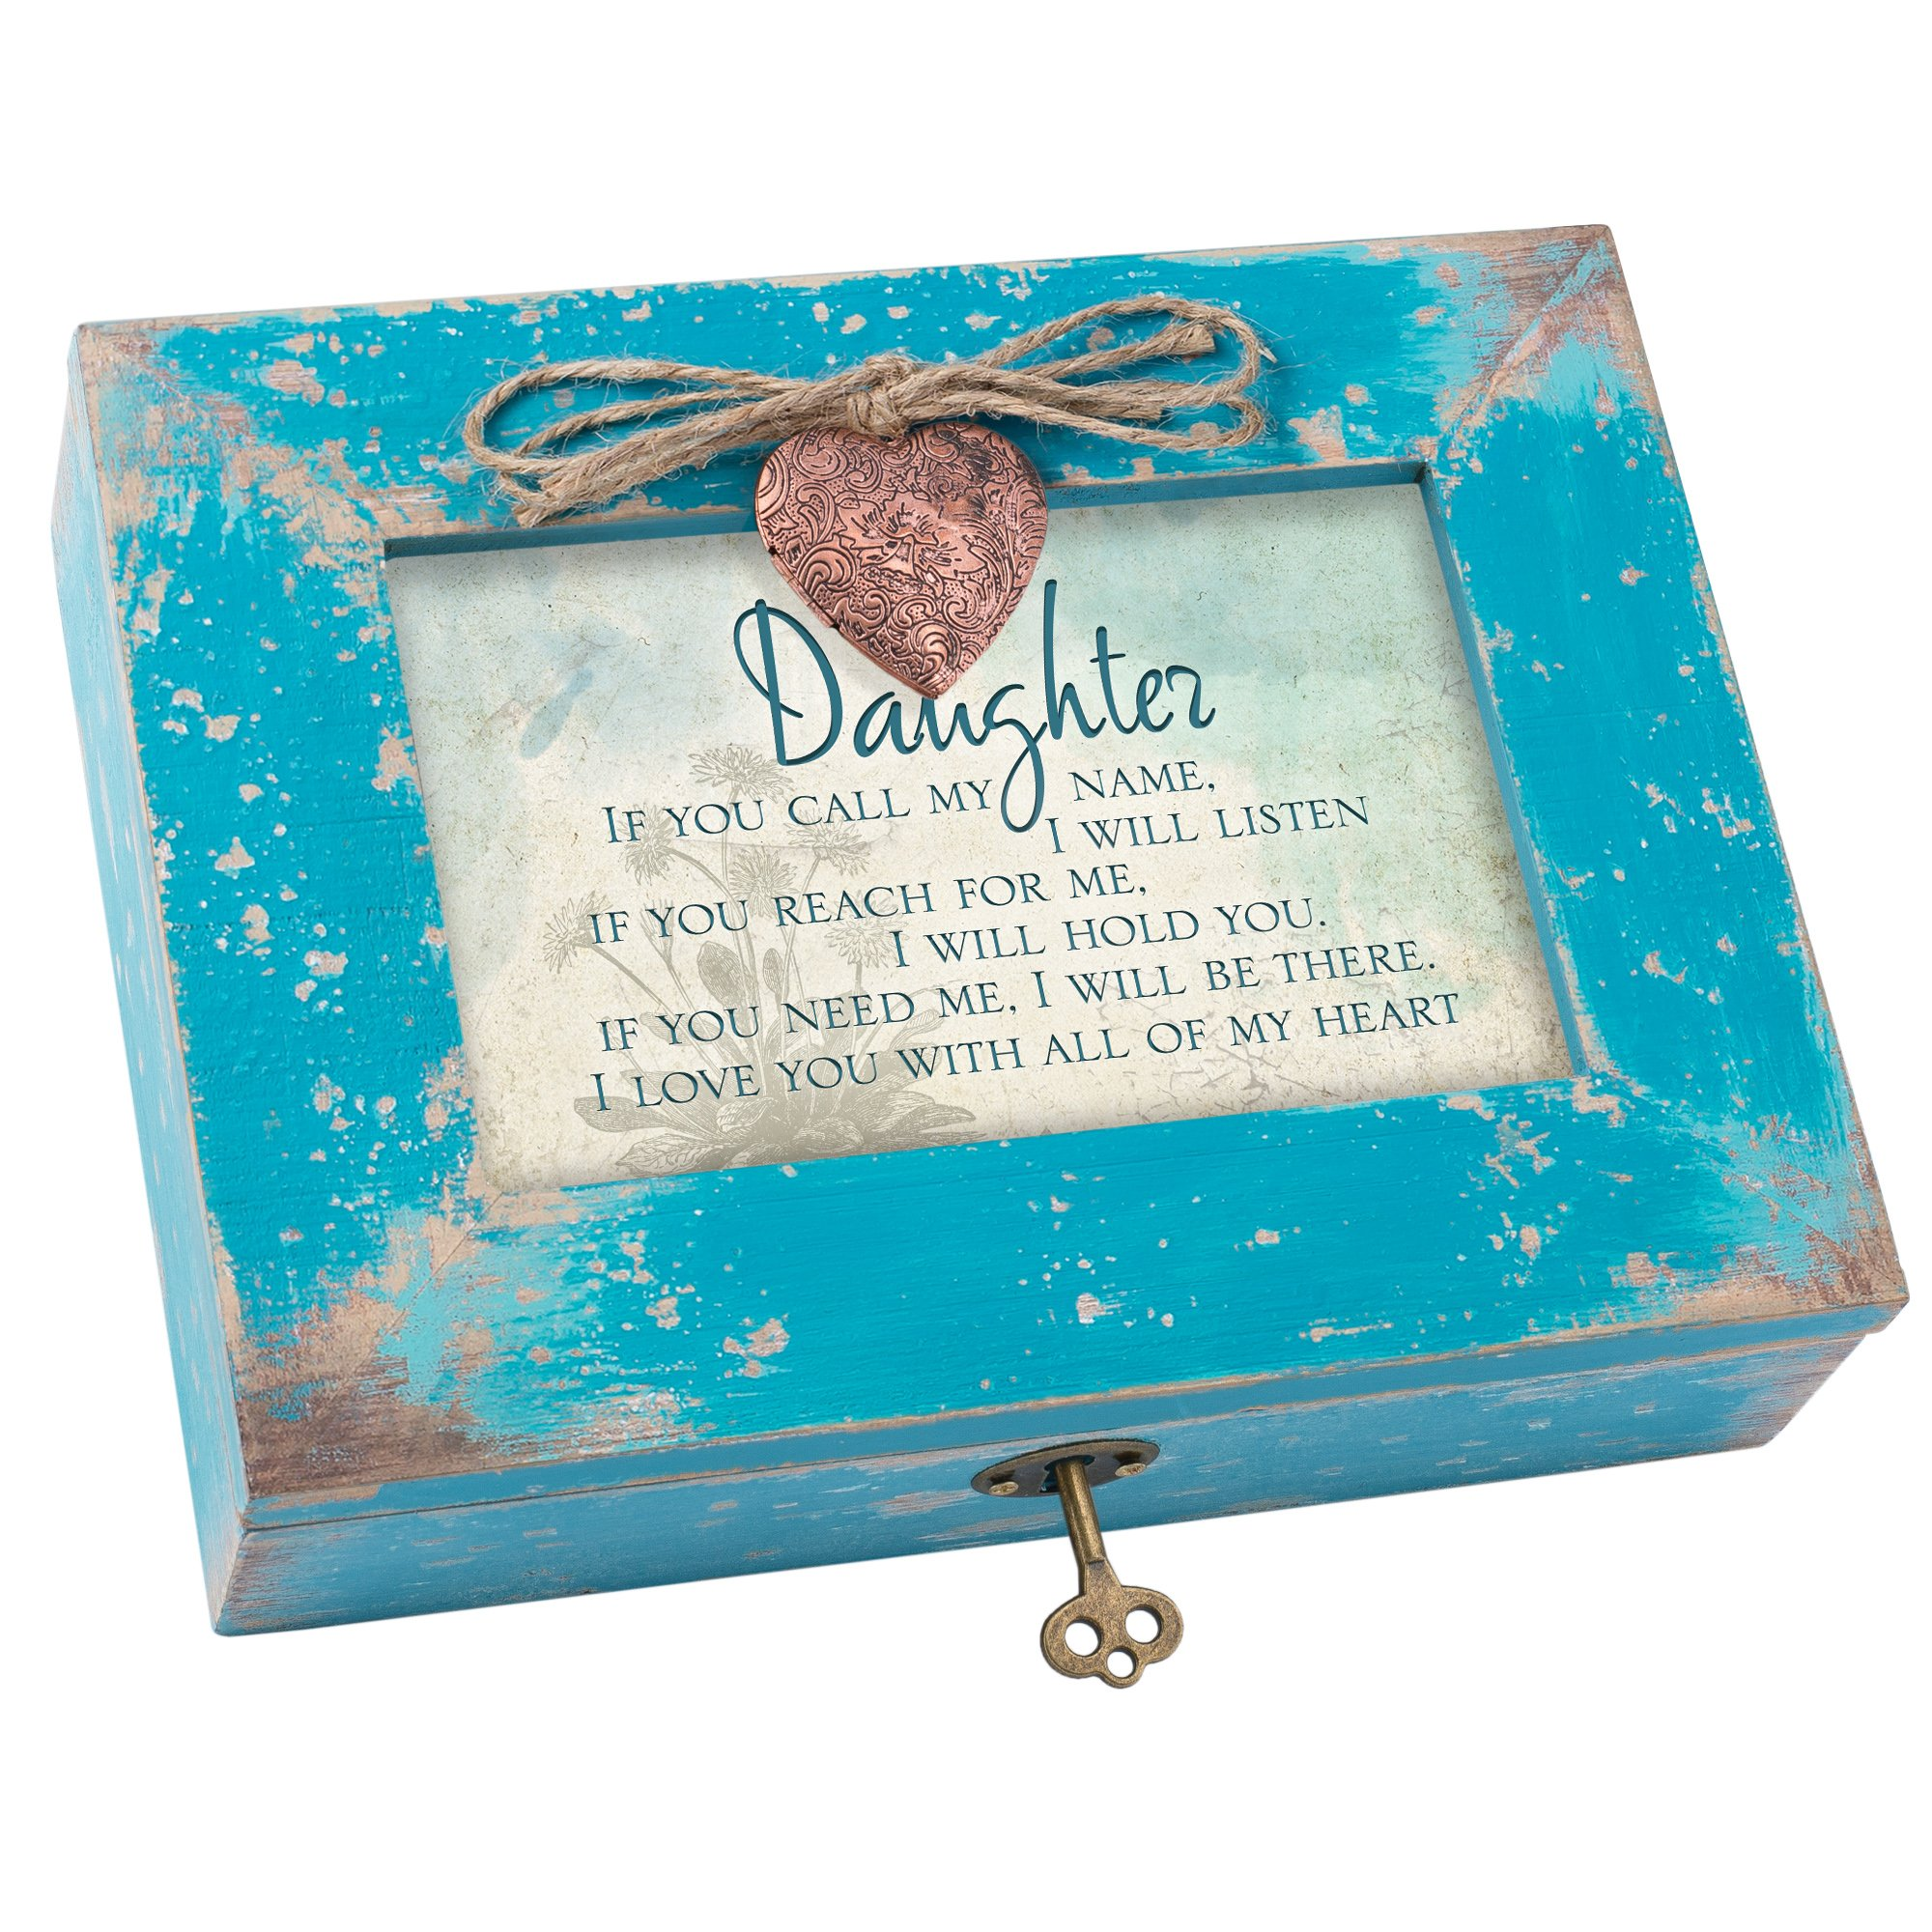 Daughter Love You All My Heart Teal Wood Locket Jewelry Music Box Plays Tune Wonderful World